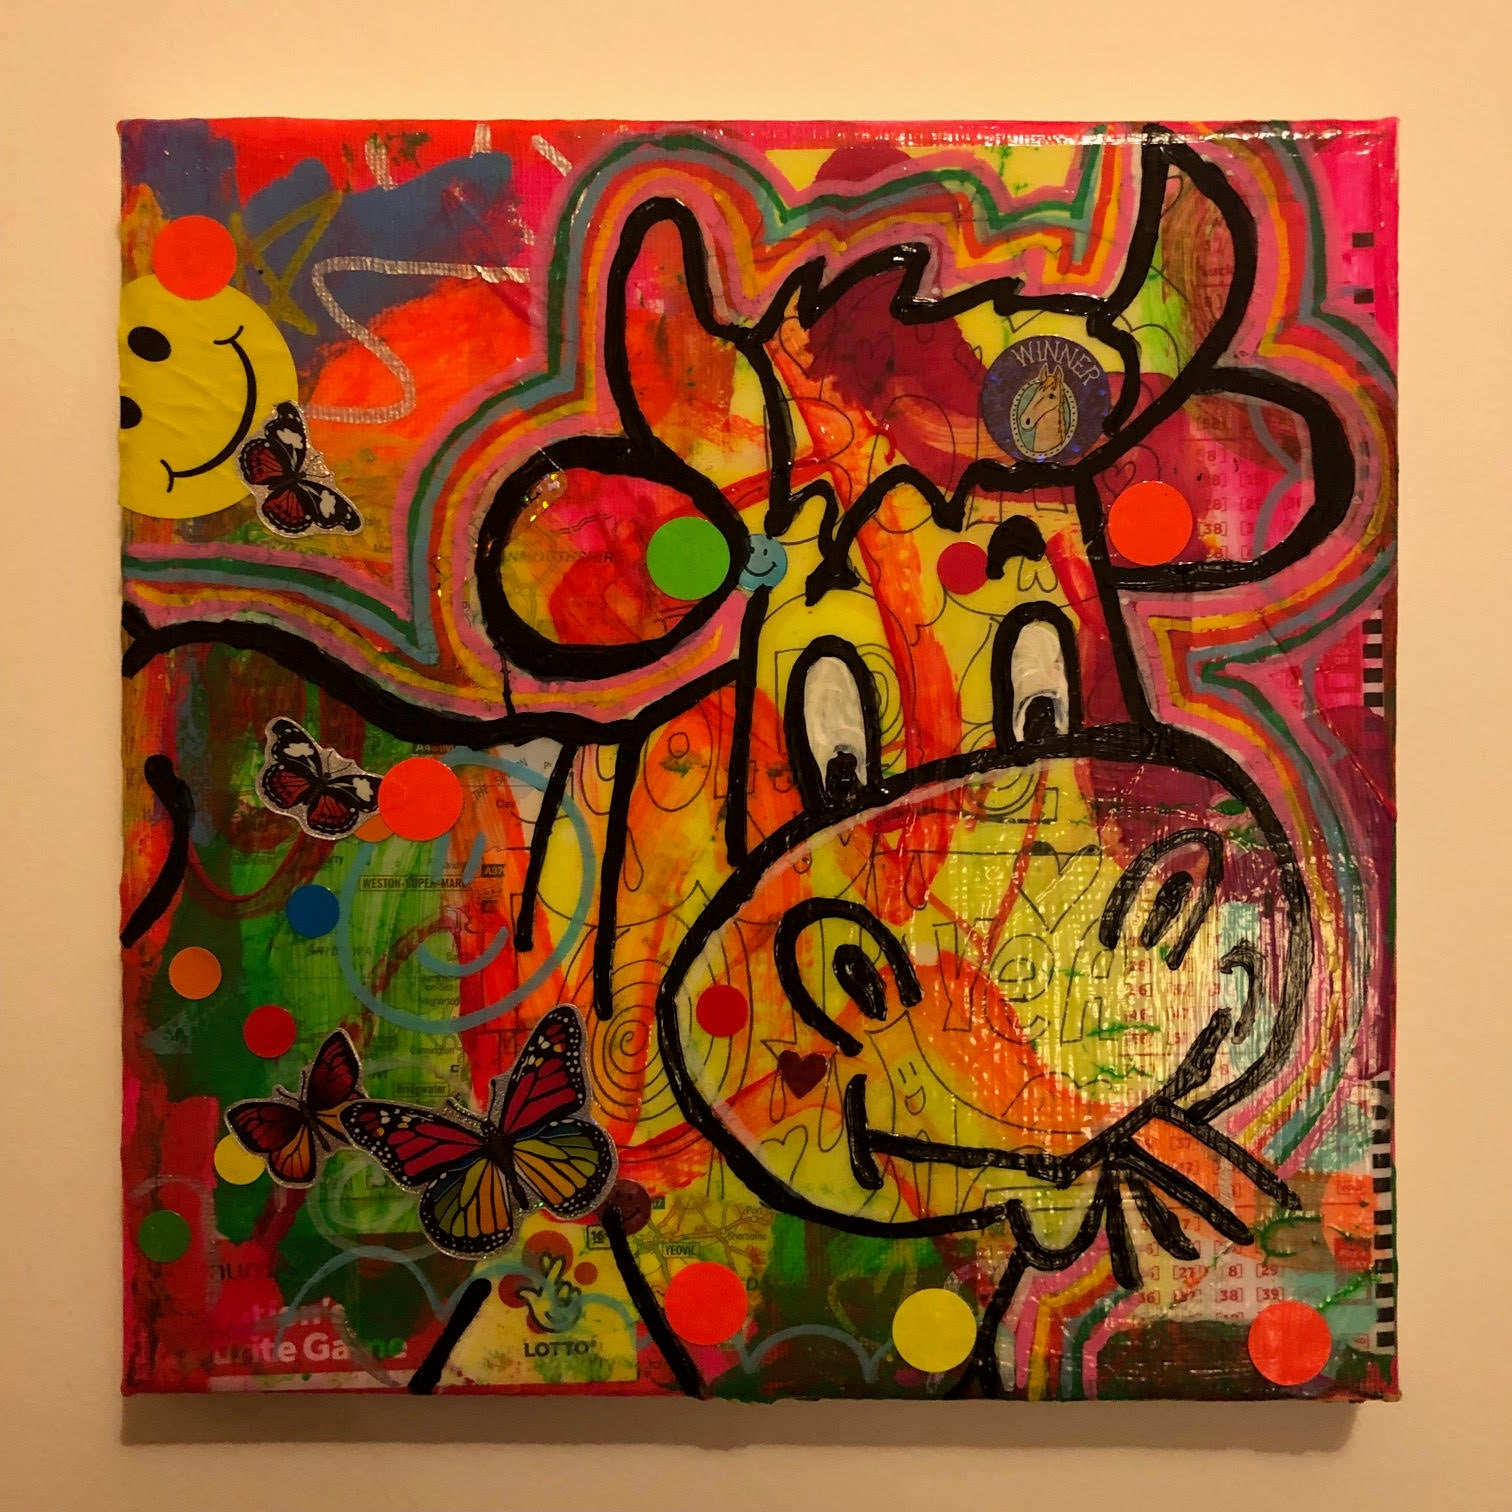 Magic Moo Moo by Barrie J Davies 2019